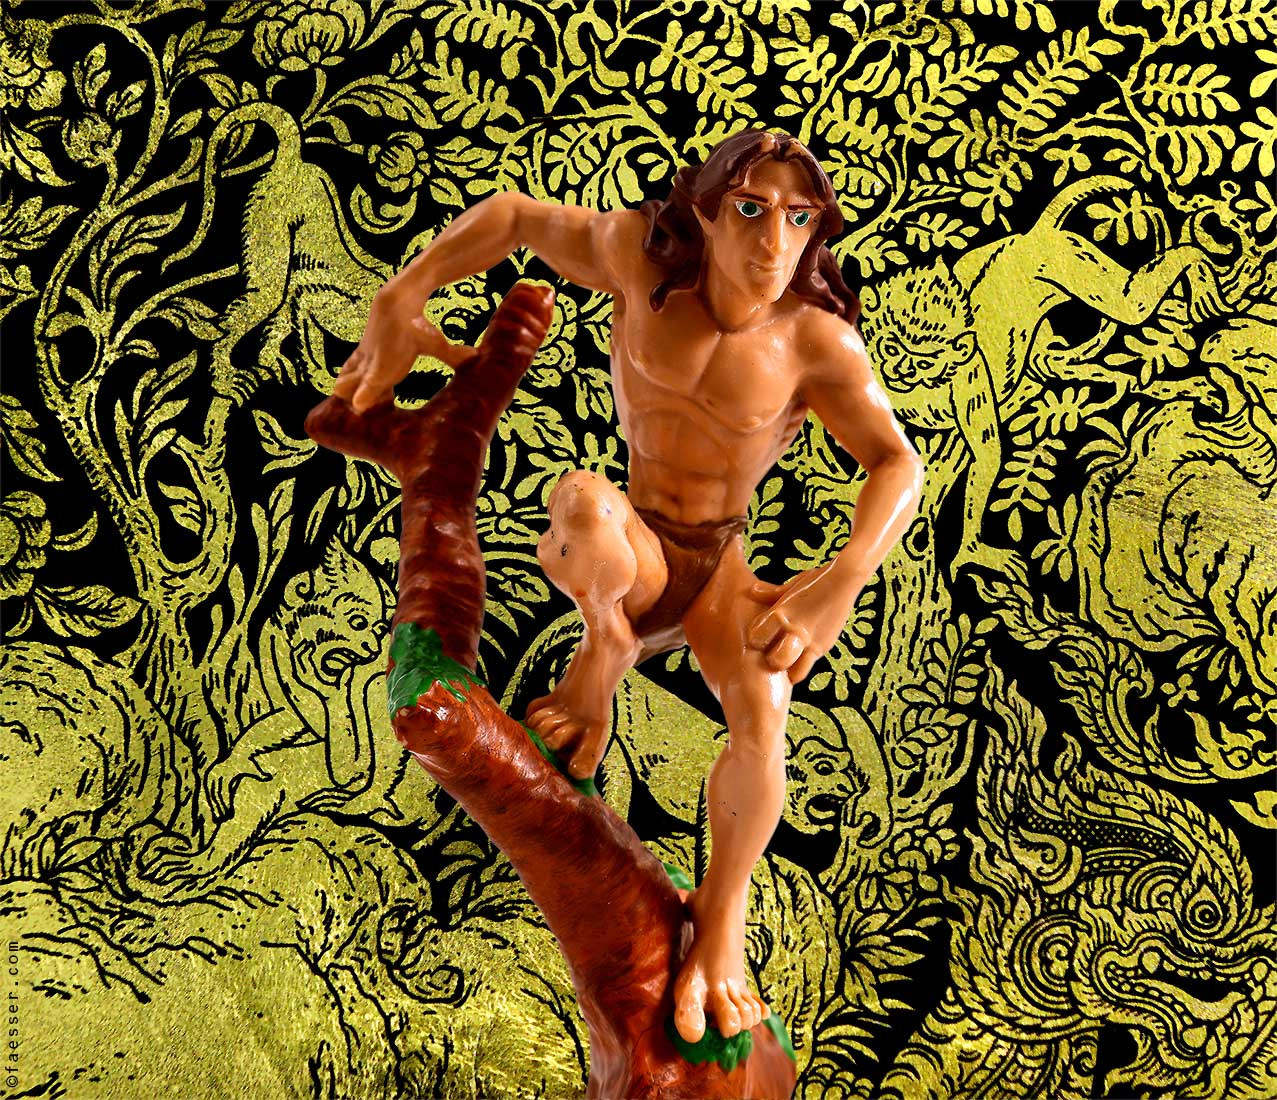 Jungle drawing with 3D Tarzan figure; work of art as digital painting; artist Roland Faesser, sculptor and painter 2018